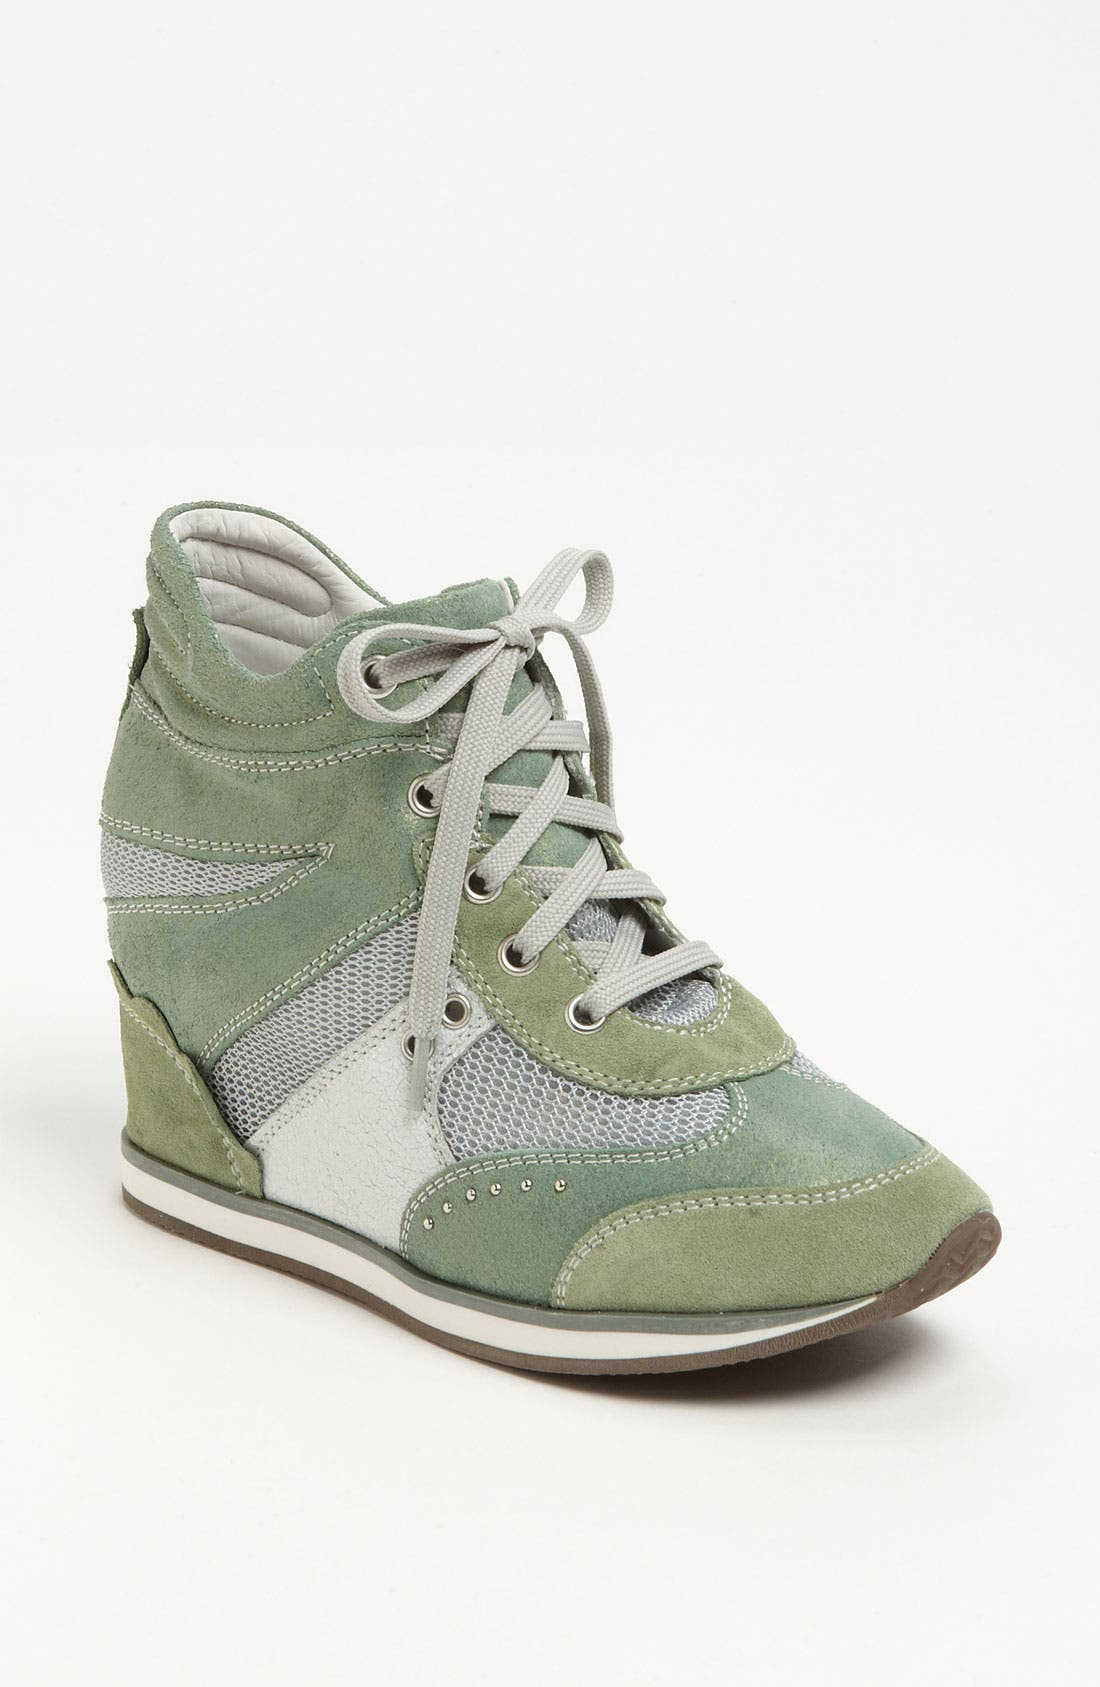 Main Image - Geox 'New Ambition' Sneaker